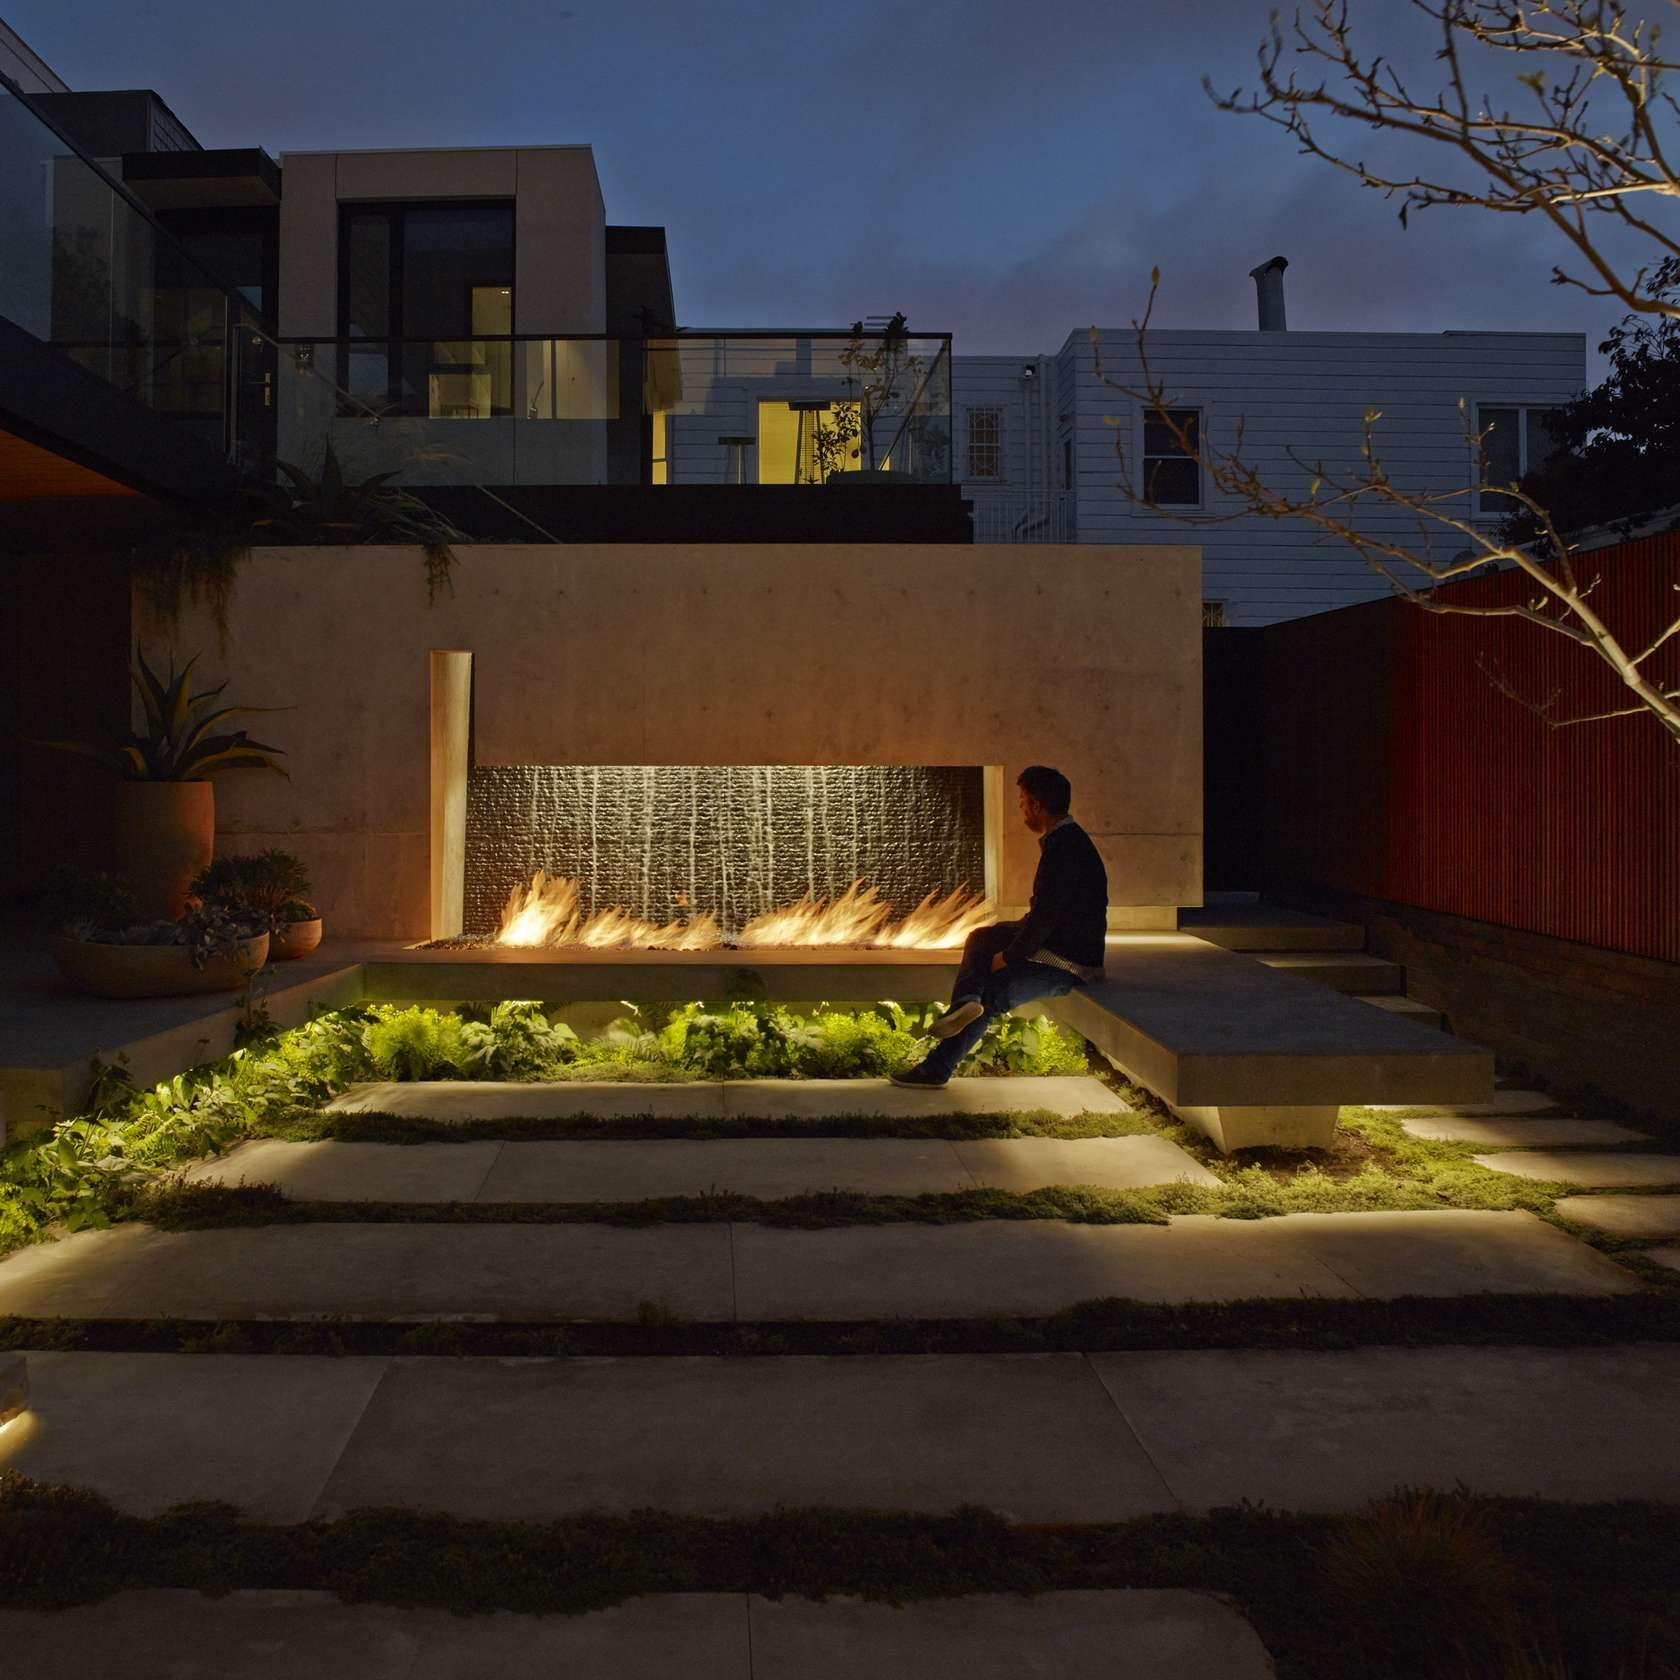 Surfacedesign Inc 21st Street Residence Contemporary